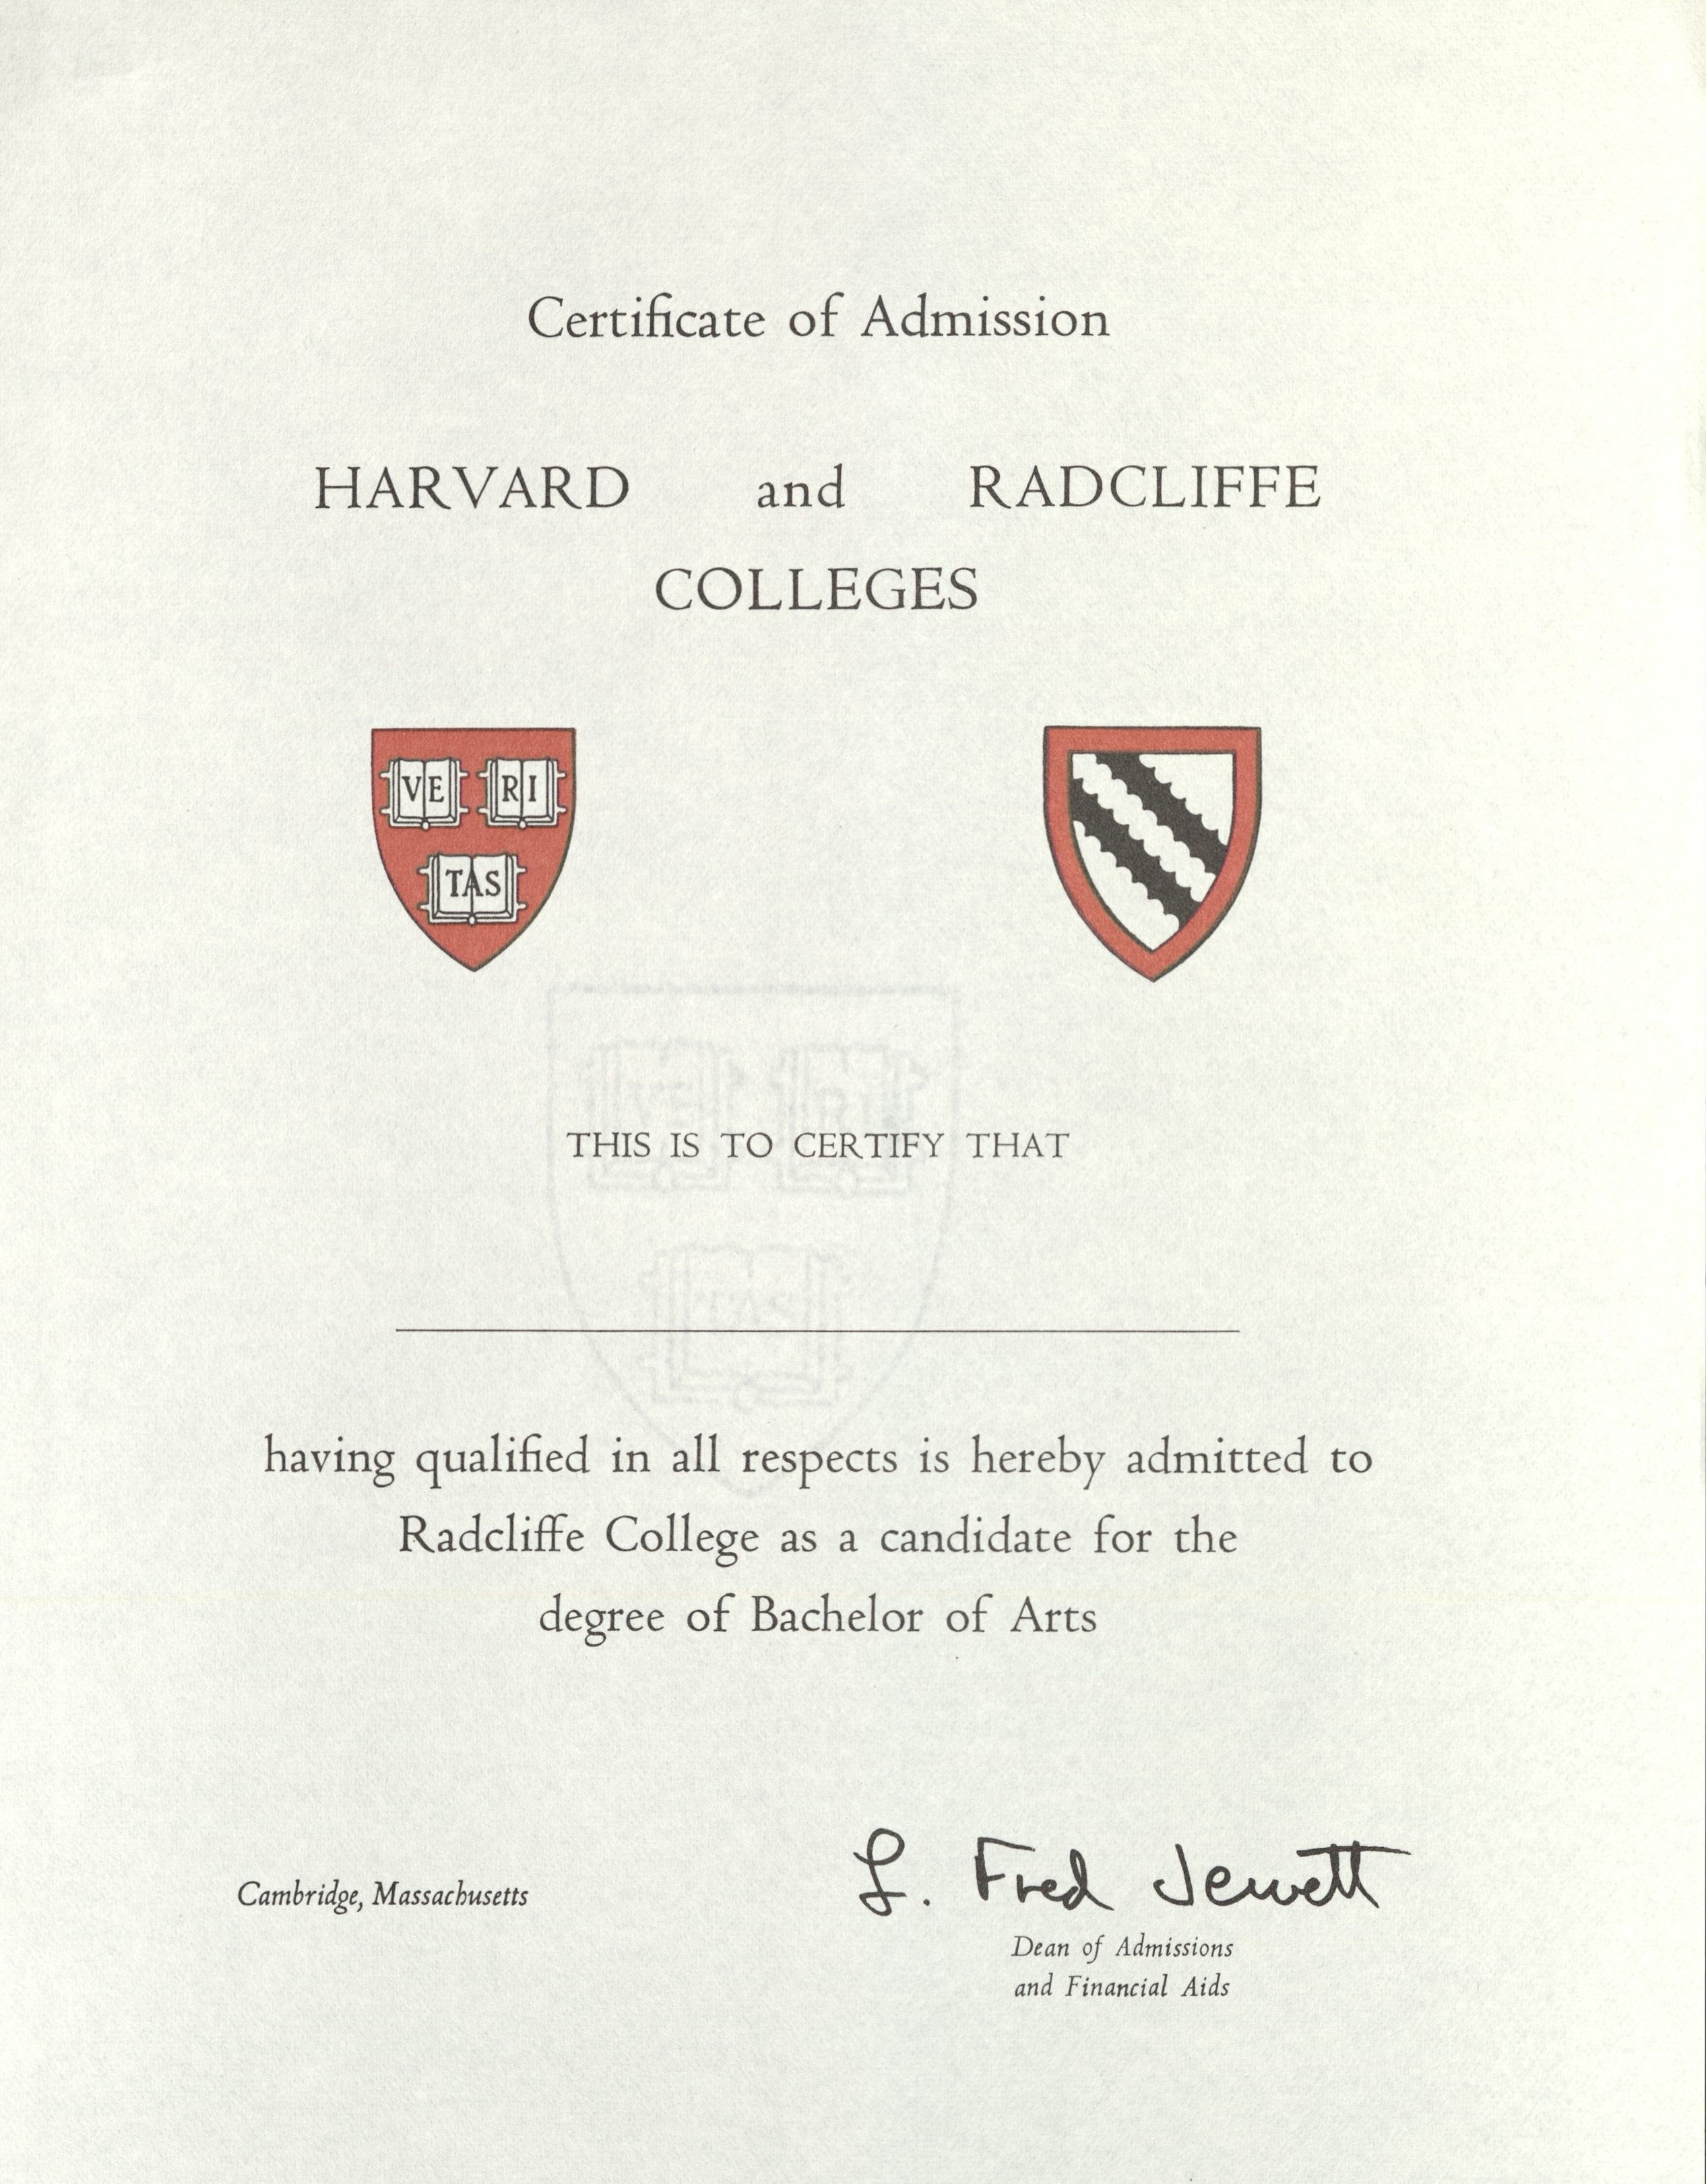 Admissions certificate